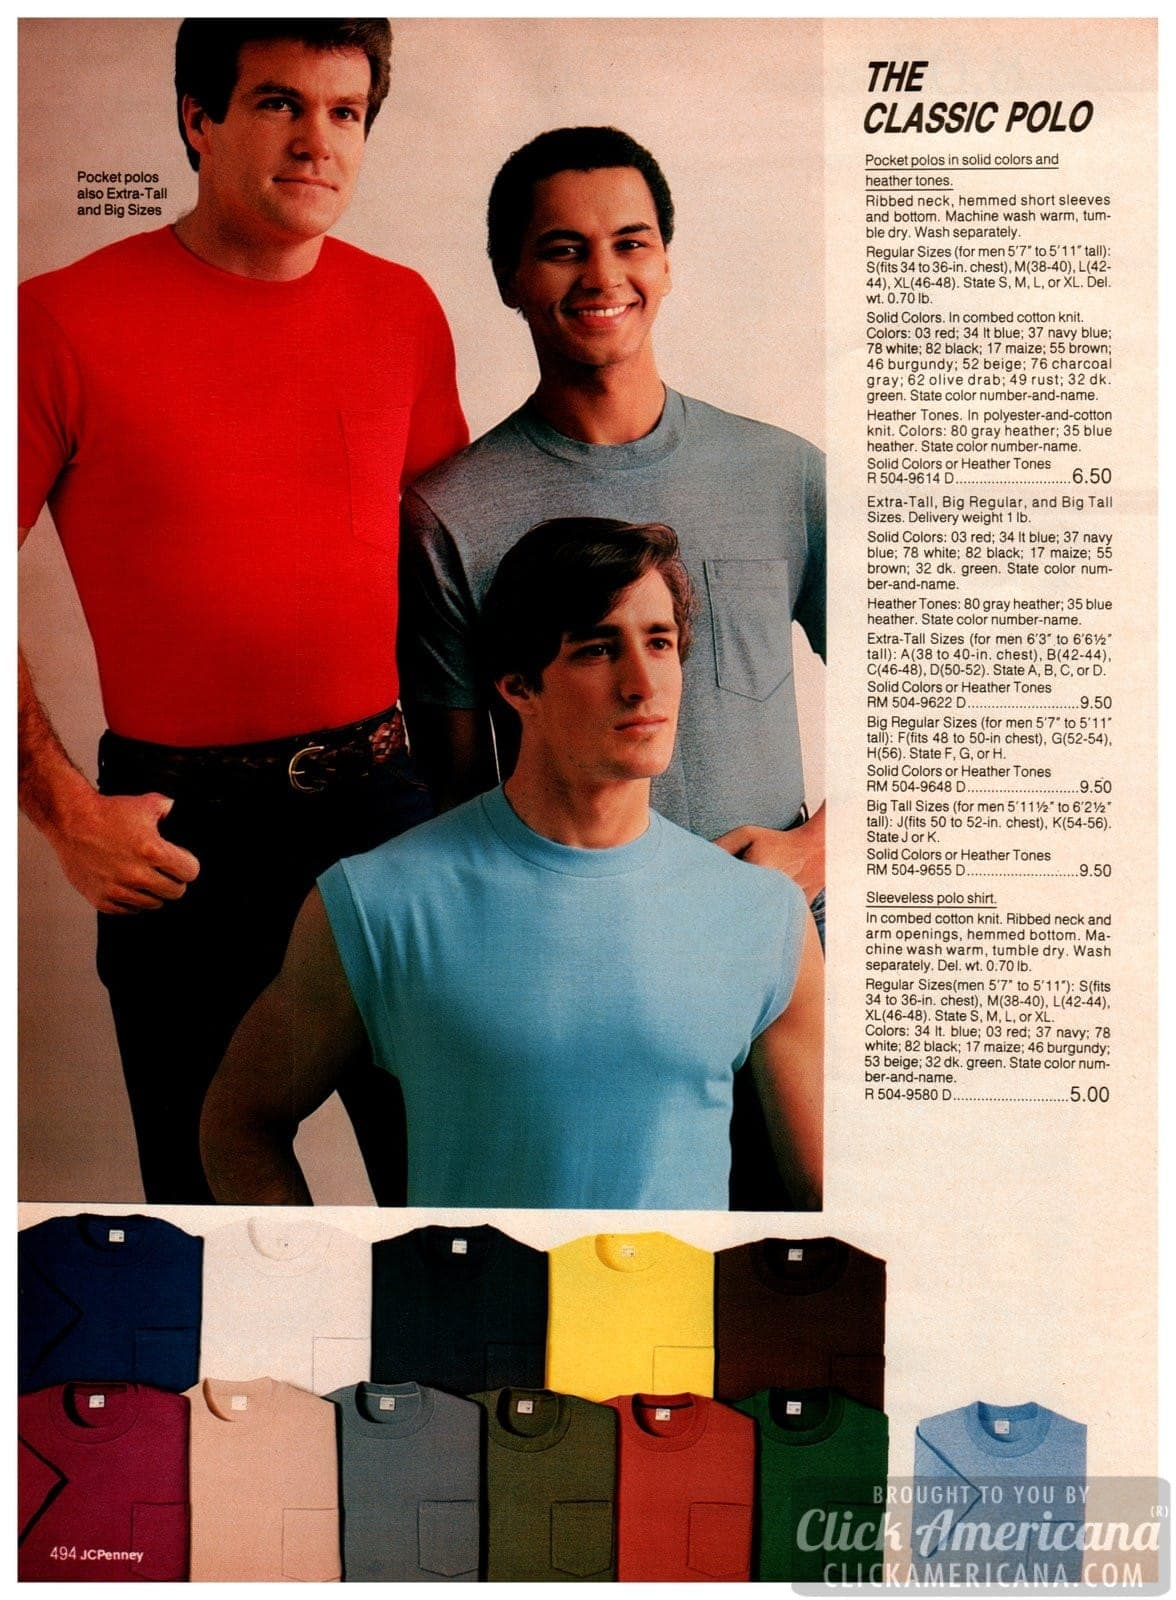 Classic pocket polo shirts with ribbed necks and short sleeves - also sleeveless polo t-shirts